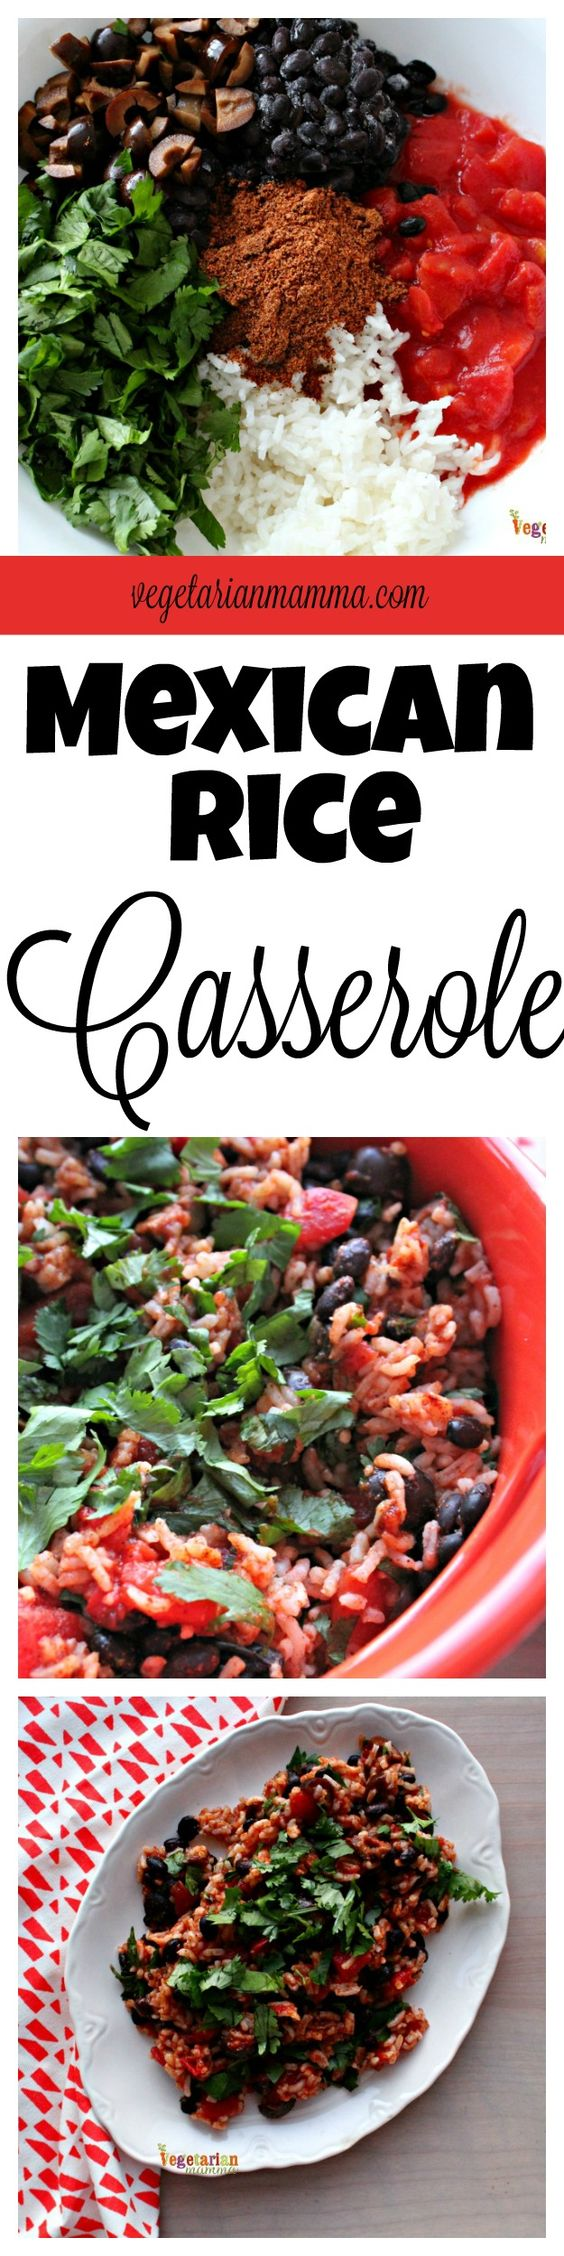 Mexican Rice Casserole - gluten free and dairy free - @vegetarianmamma.com